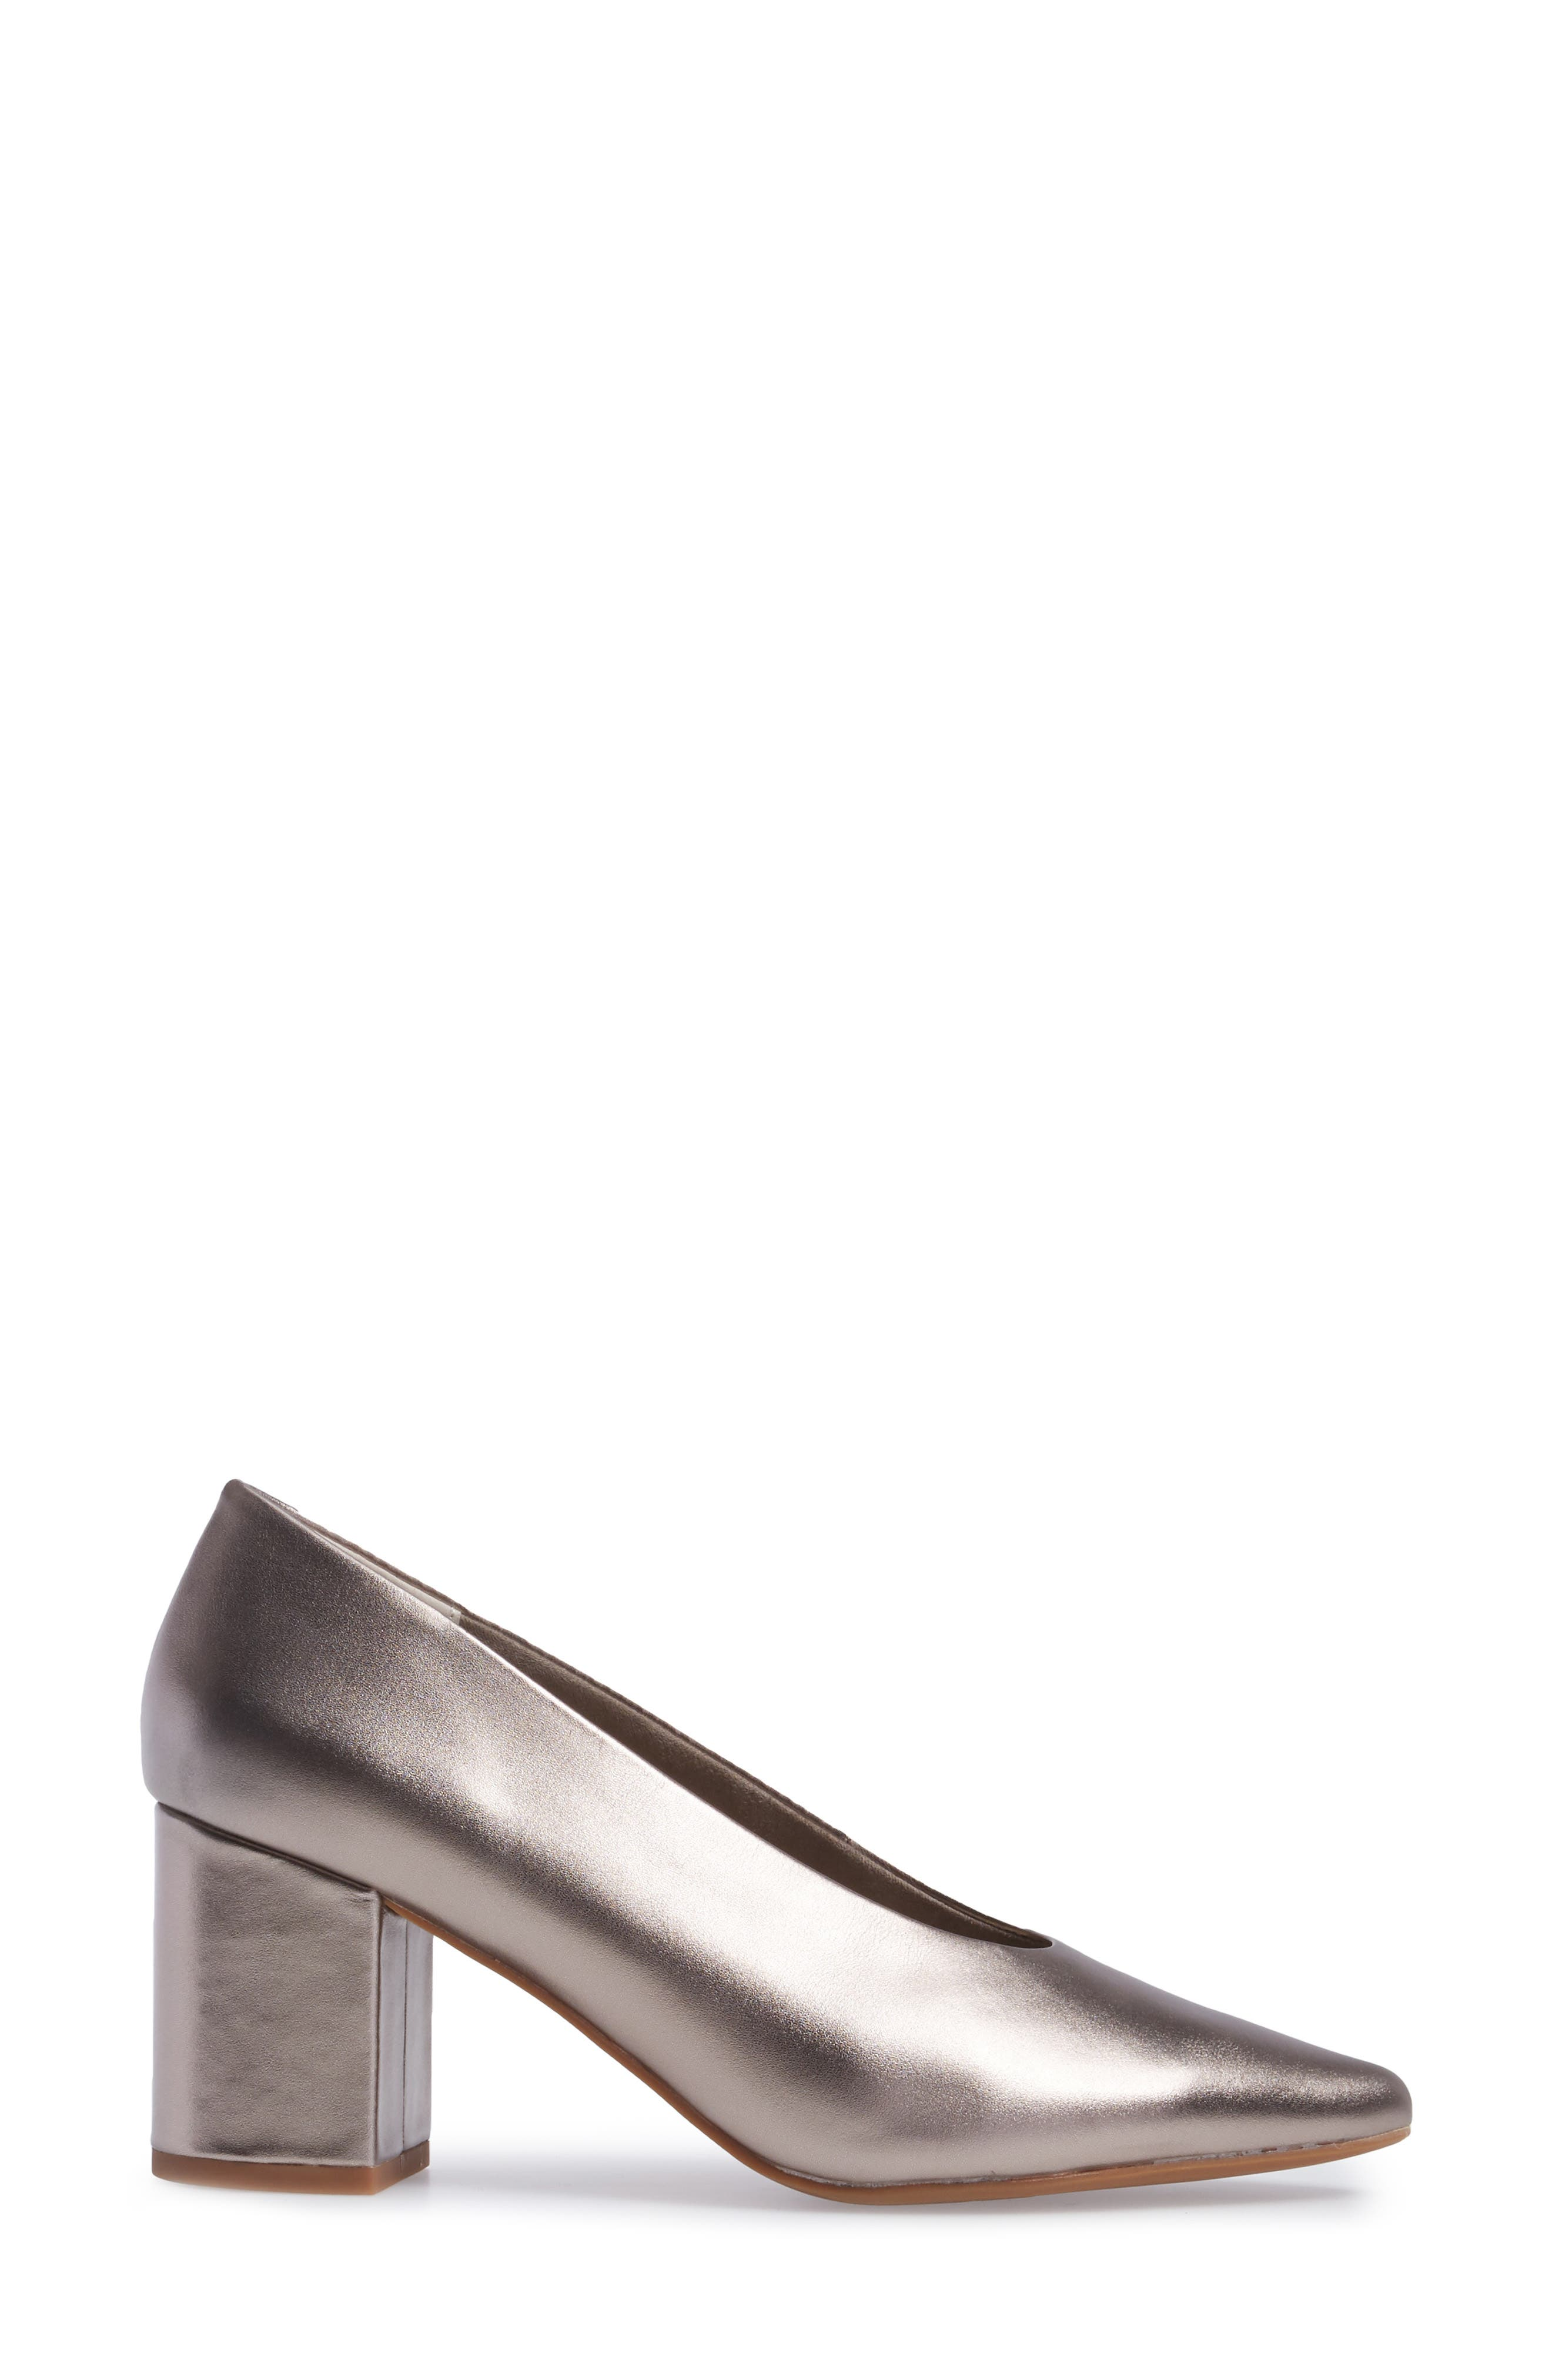 Rehearse Pointy Toe Pump,                             Alternate thumbnail 10, color,